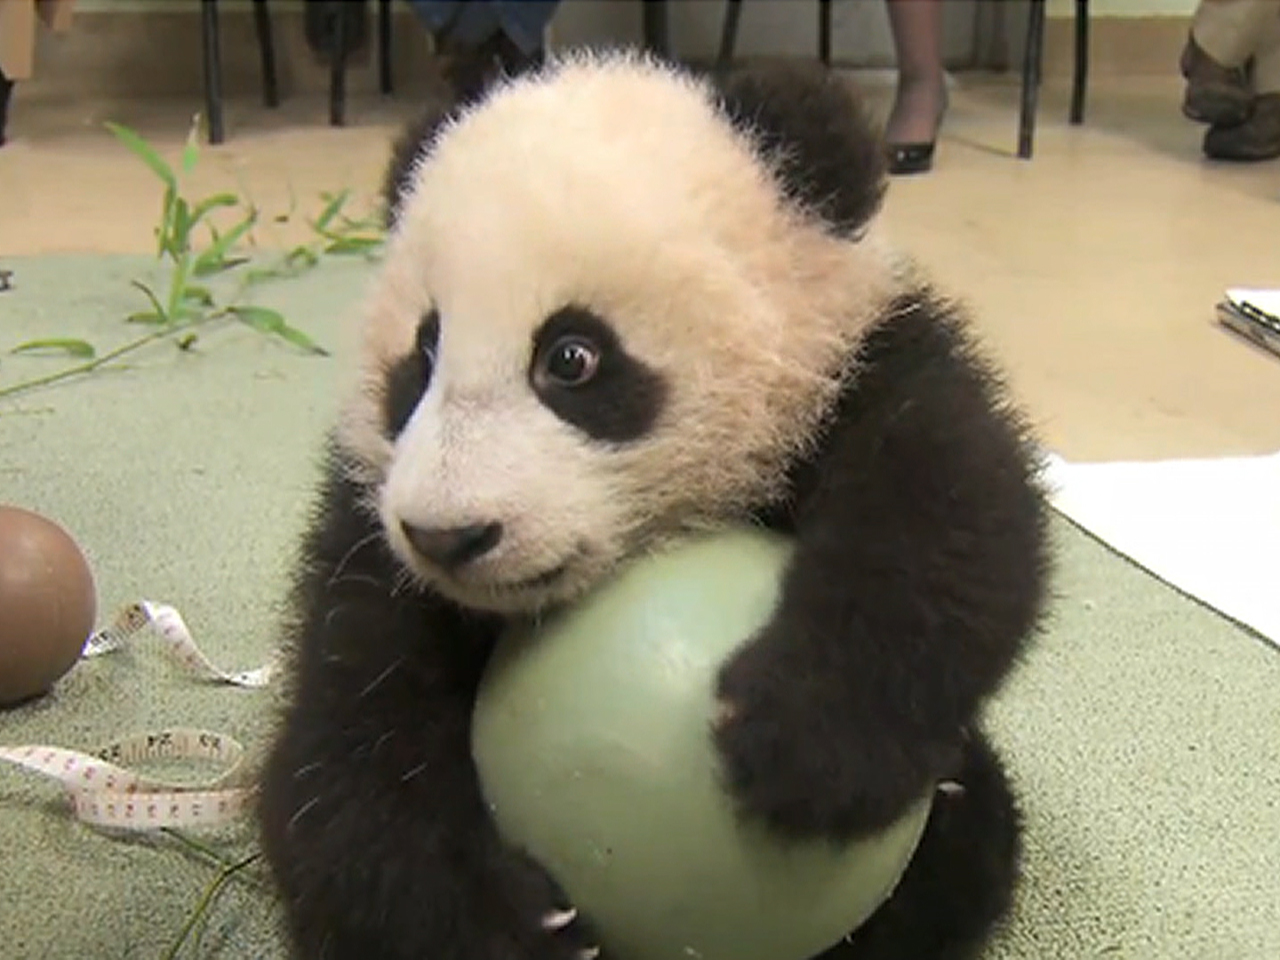 Bobbling Baby Panda Plays With Toy Ball